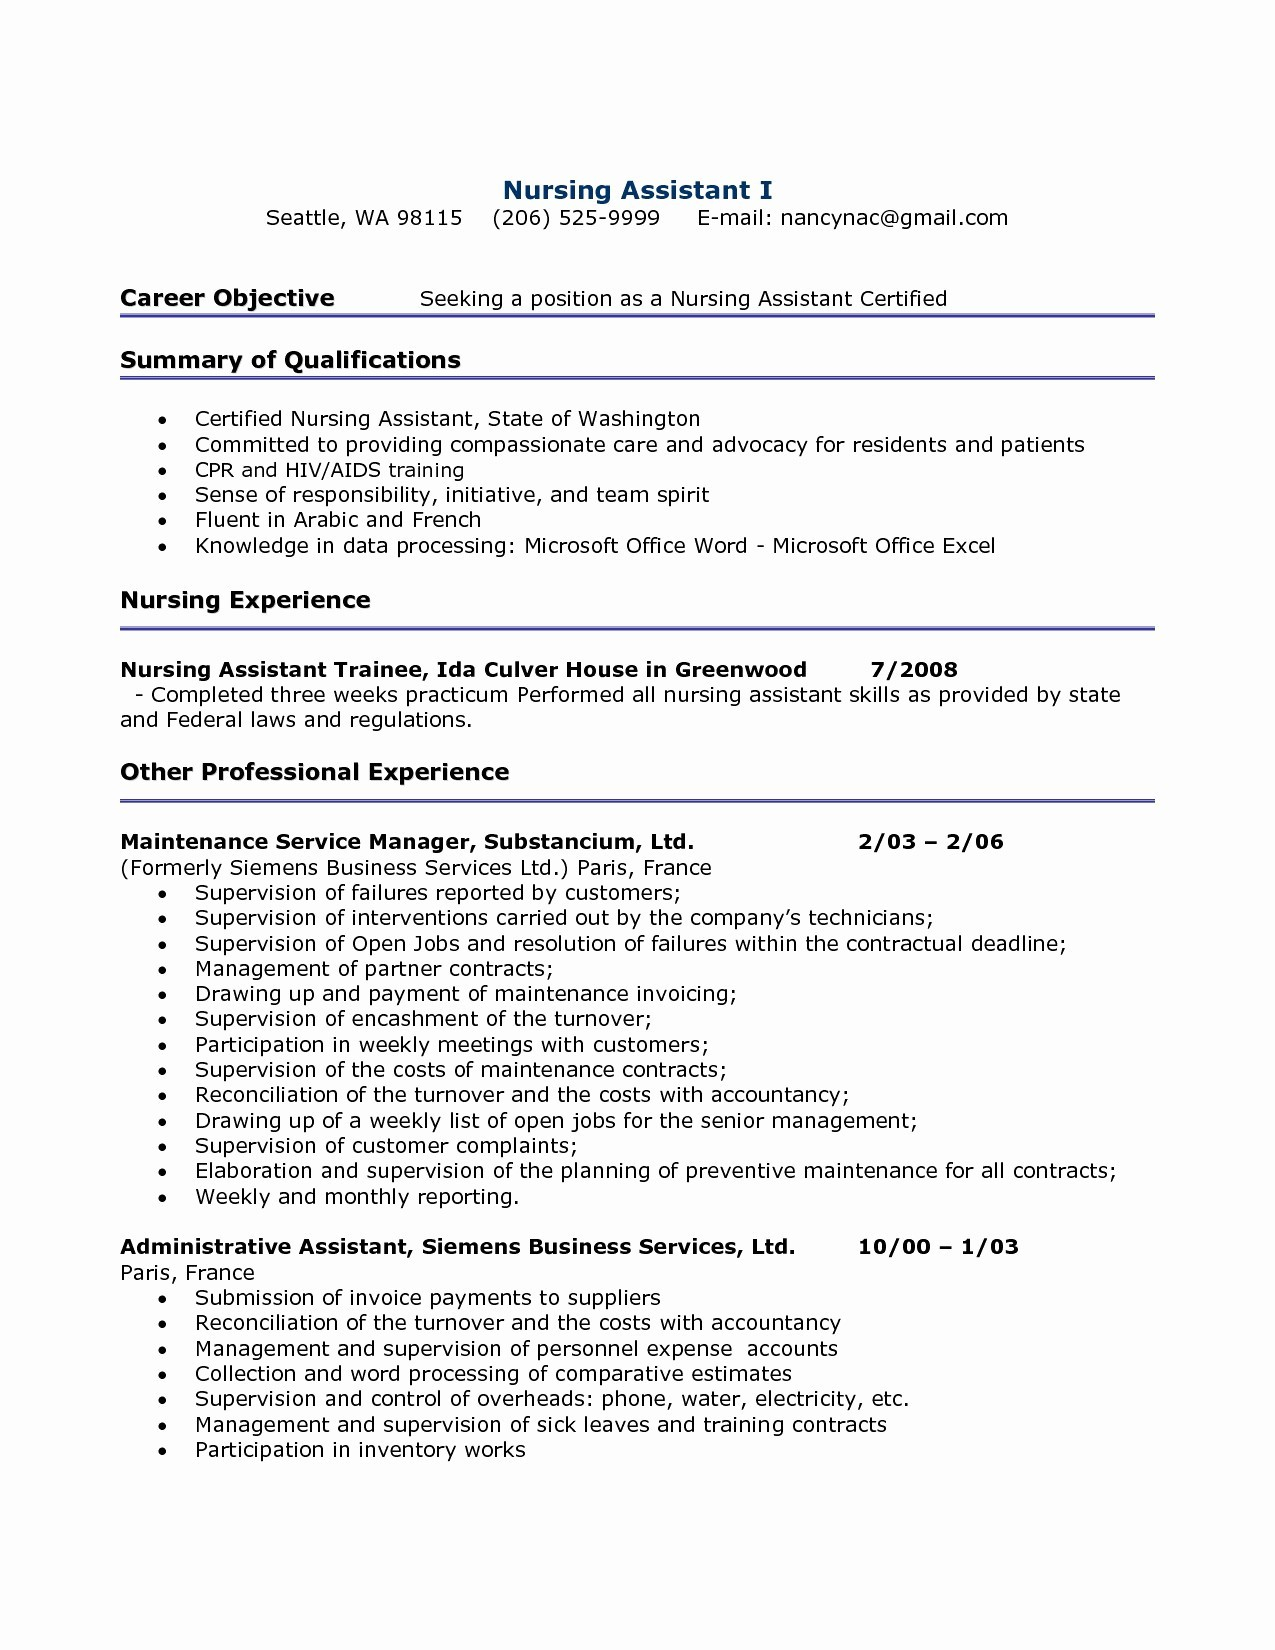 Pay for Resume Services - the Ladders Resume Beautiful Best Examples Resumes Ecologist Resume